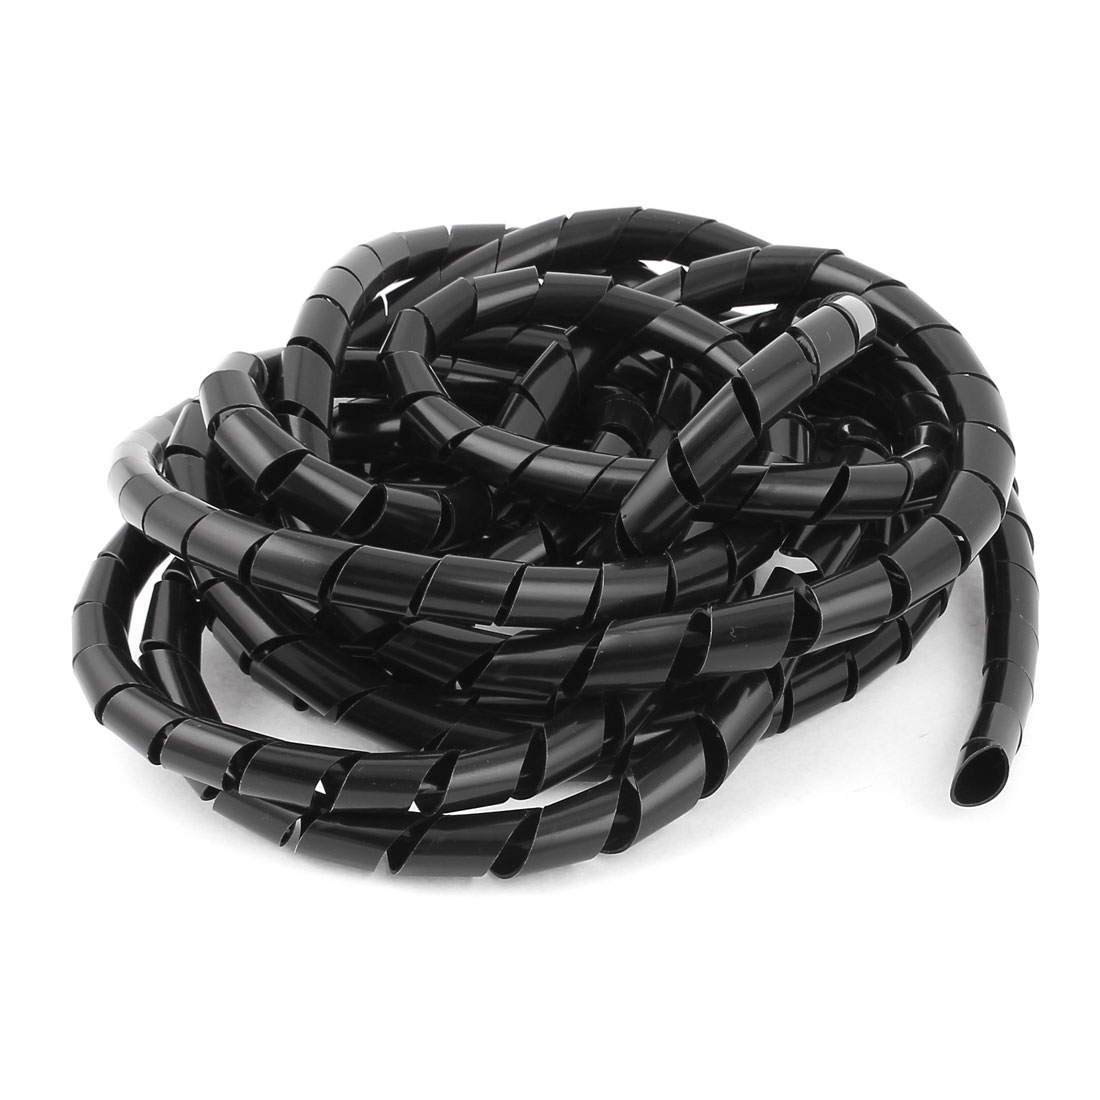 12mm 5.5M Polyethylene Computer Manage Cord Spiral Cable Wire Wrap Tube Black